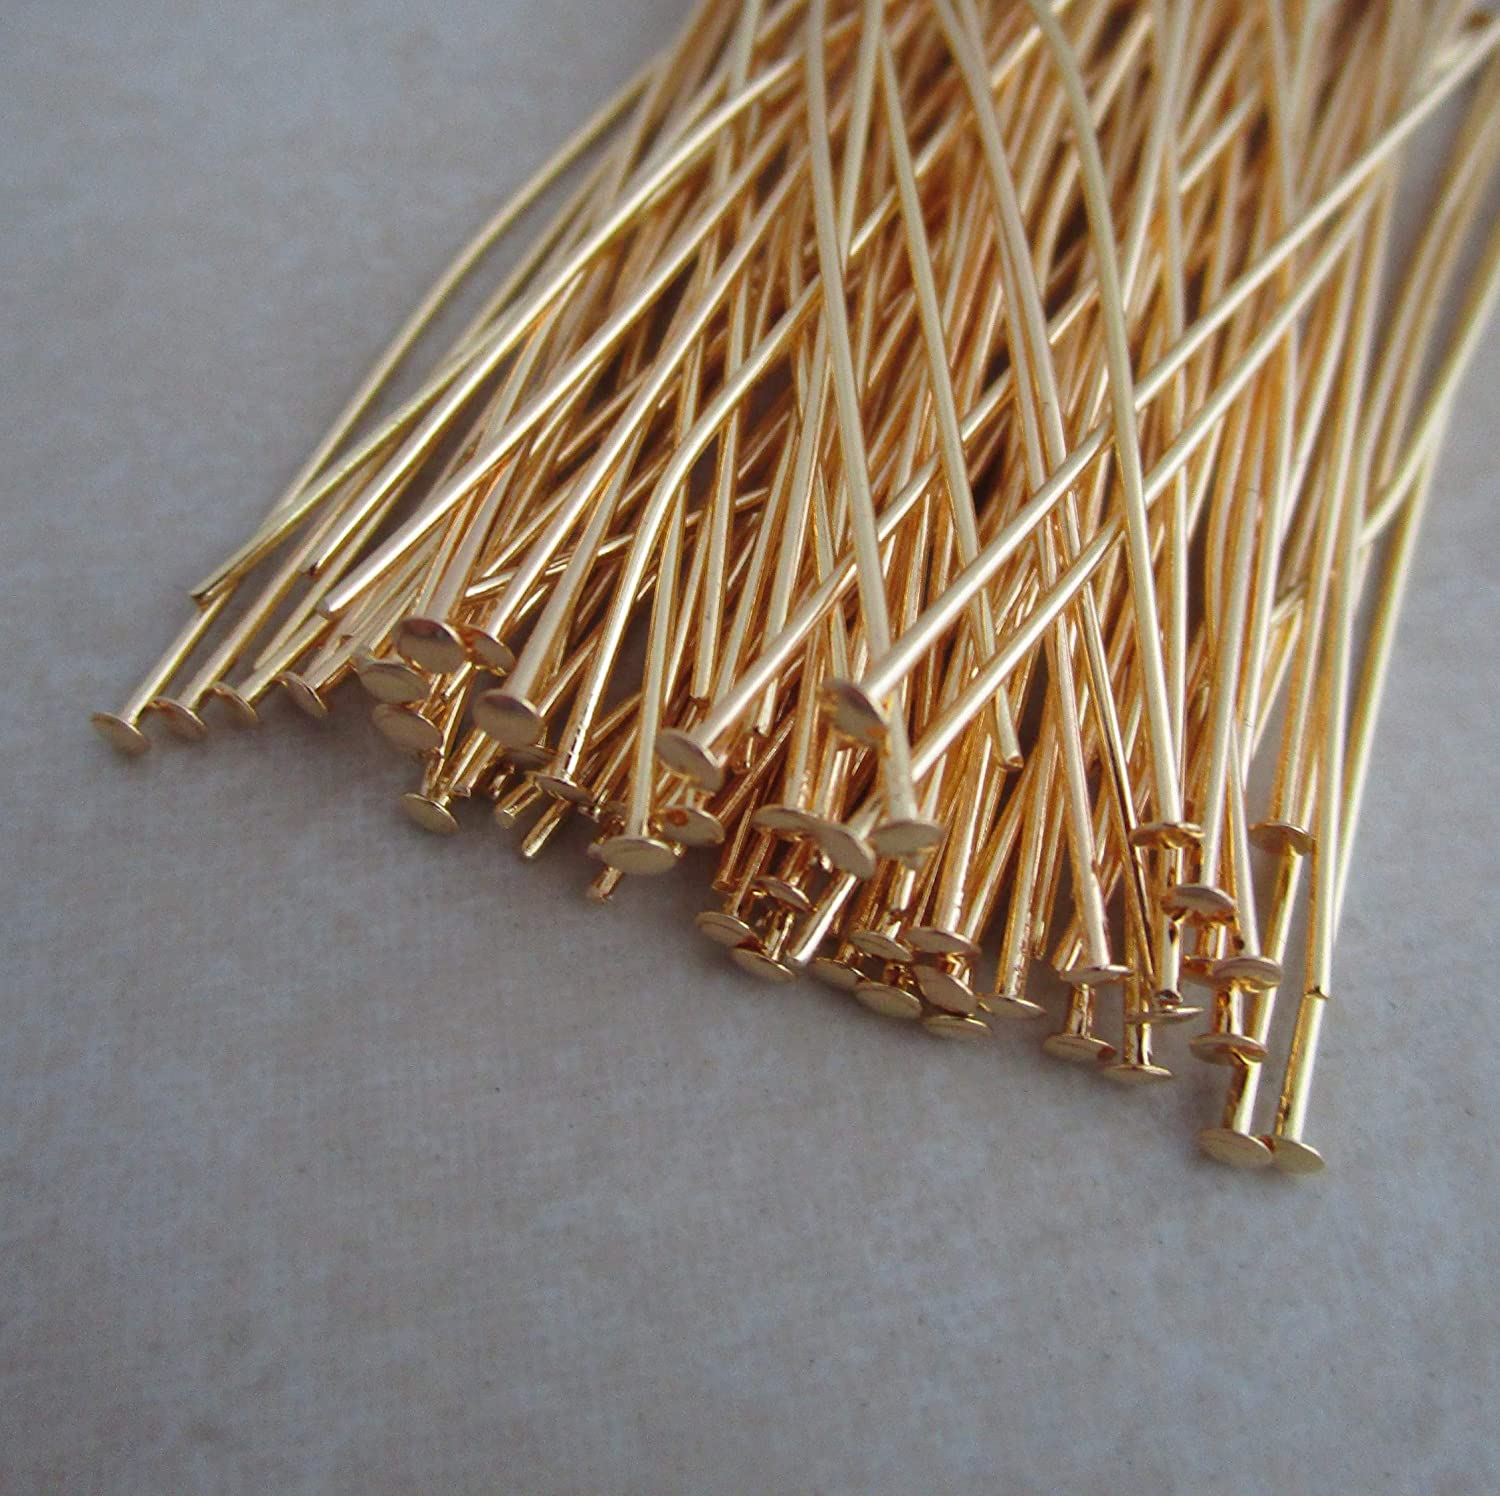 Gold Plated headpins 2 inch 21 Gauge 200